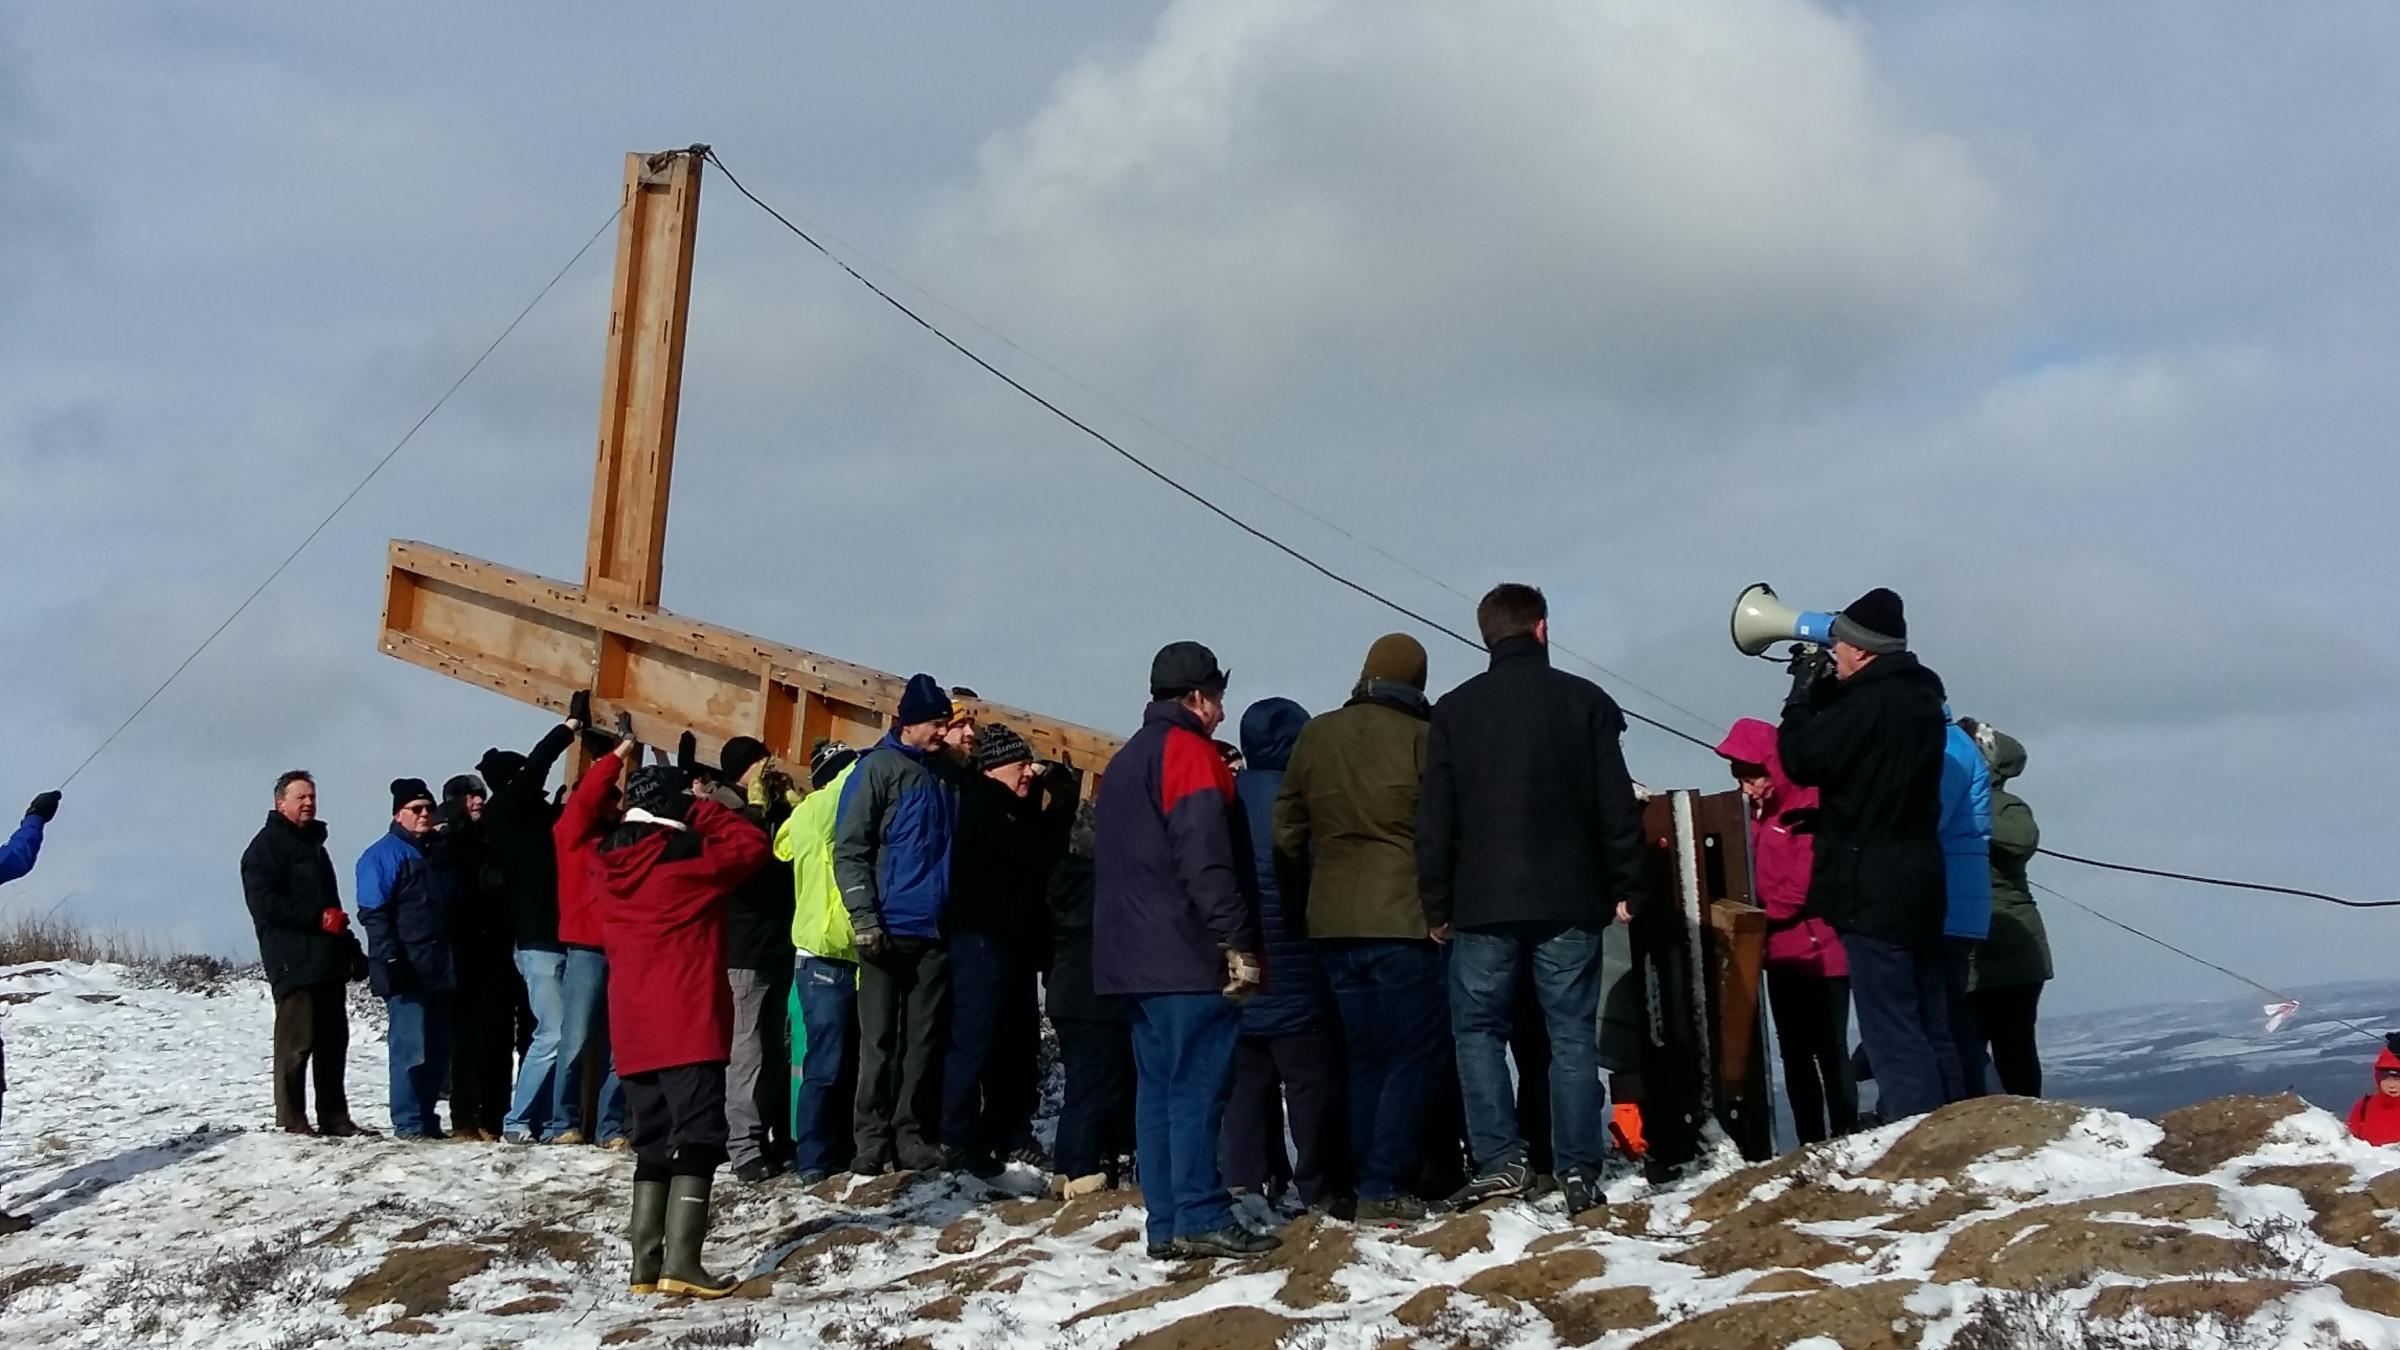 The Chevin Cross being carried into position on Otley Chevin. Photograph by Christine Hodson